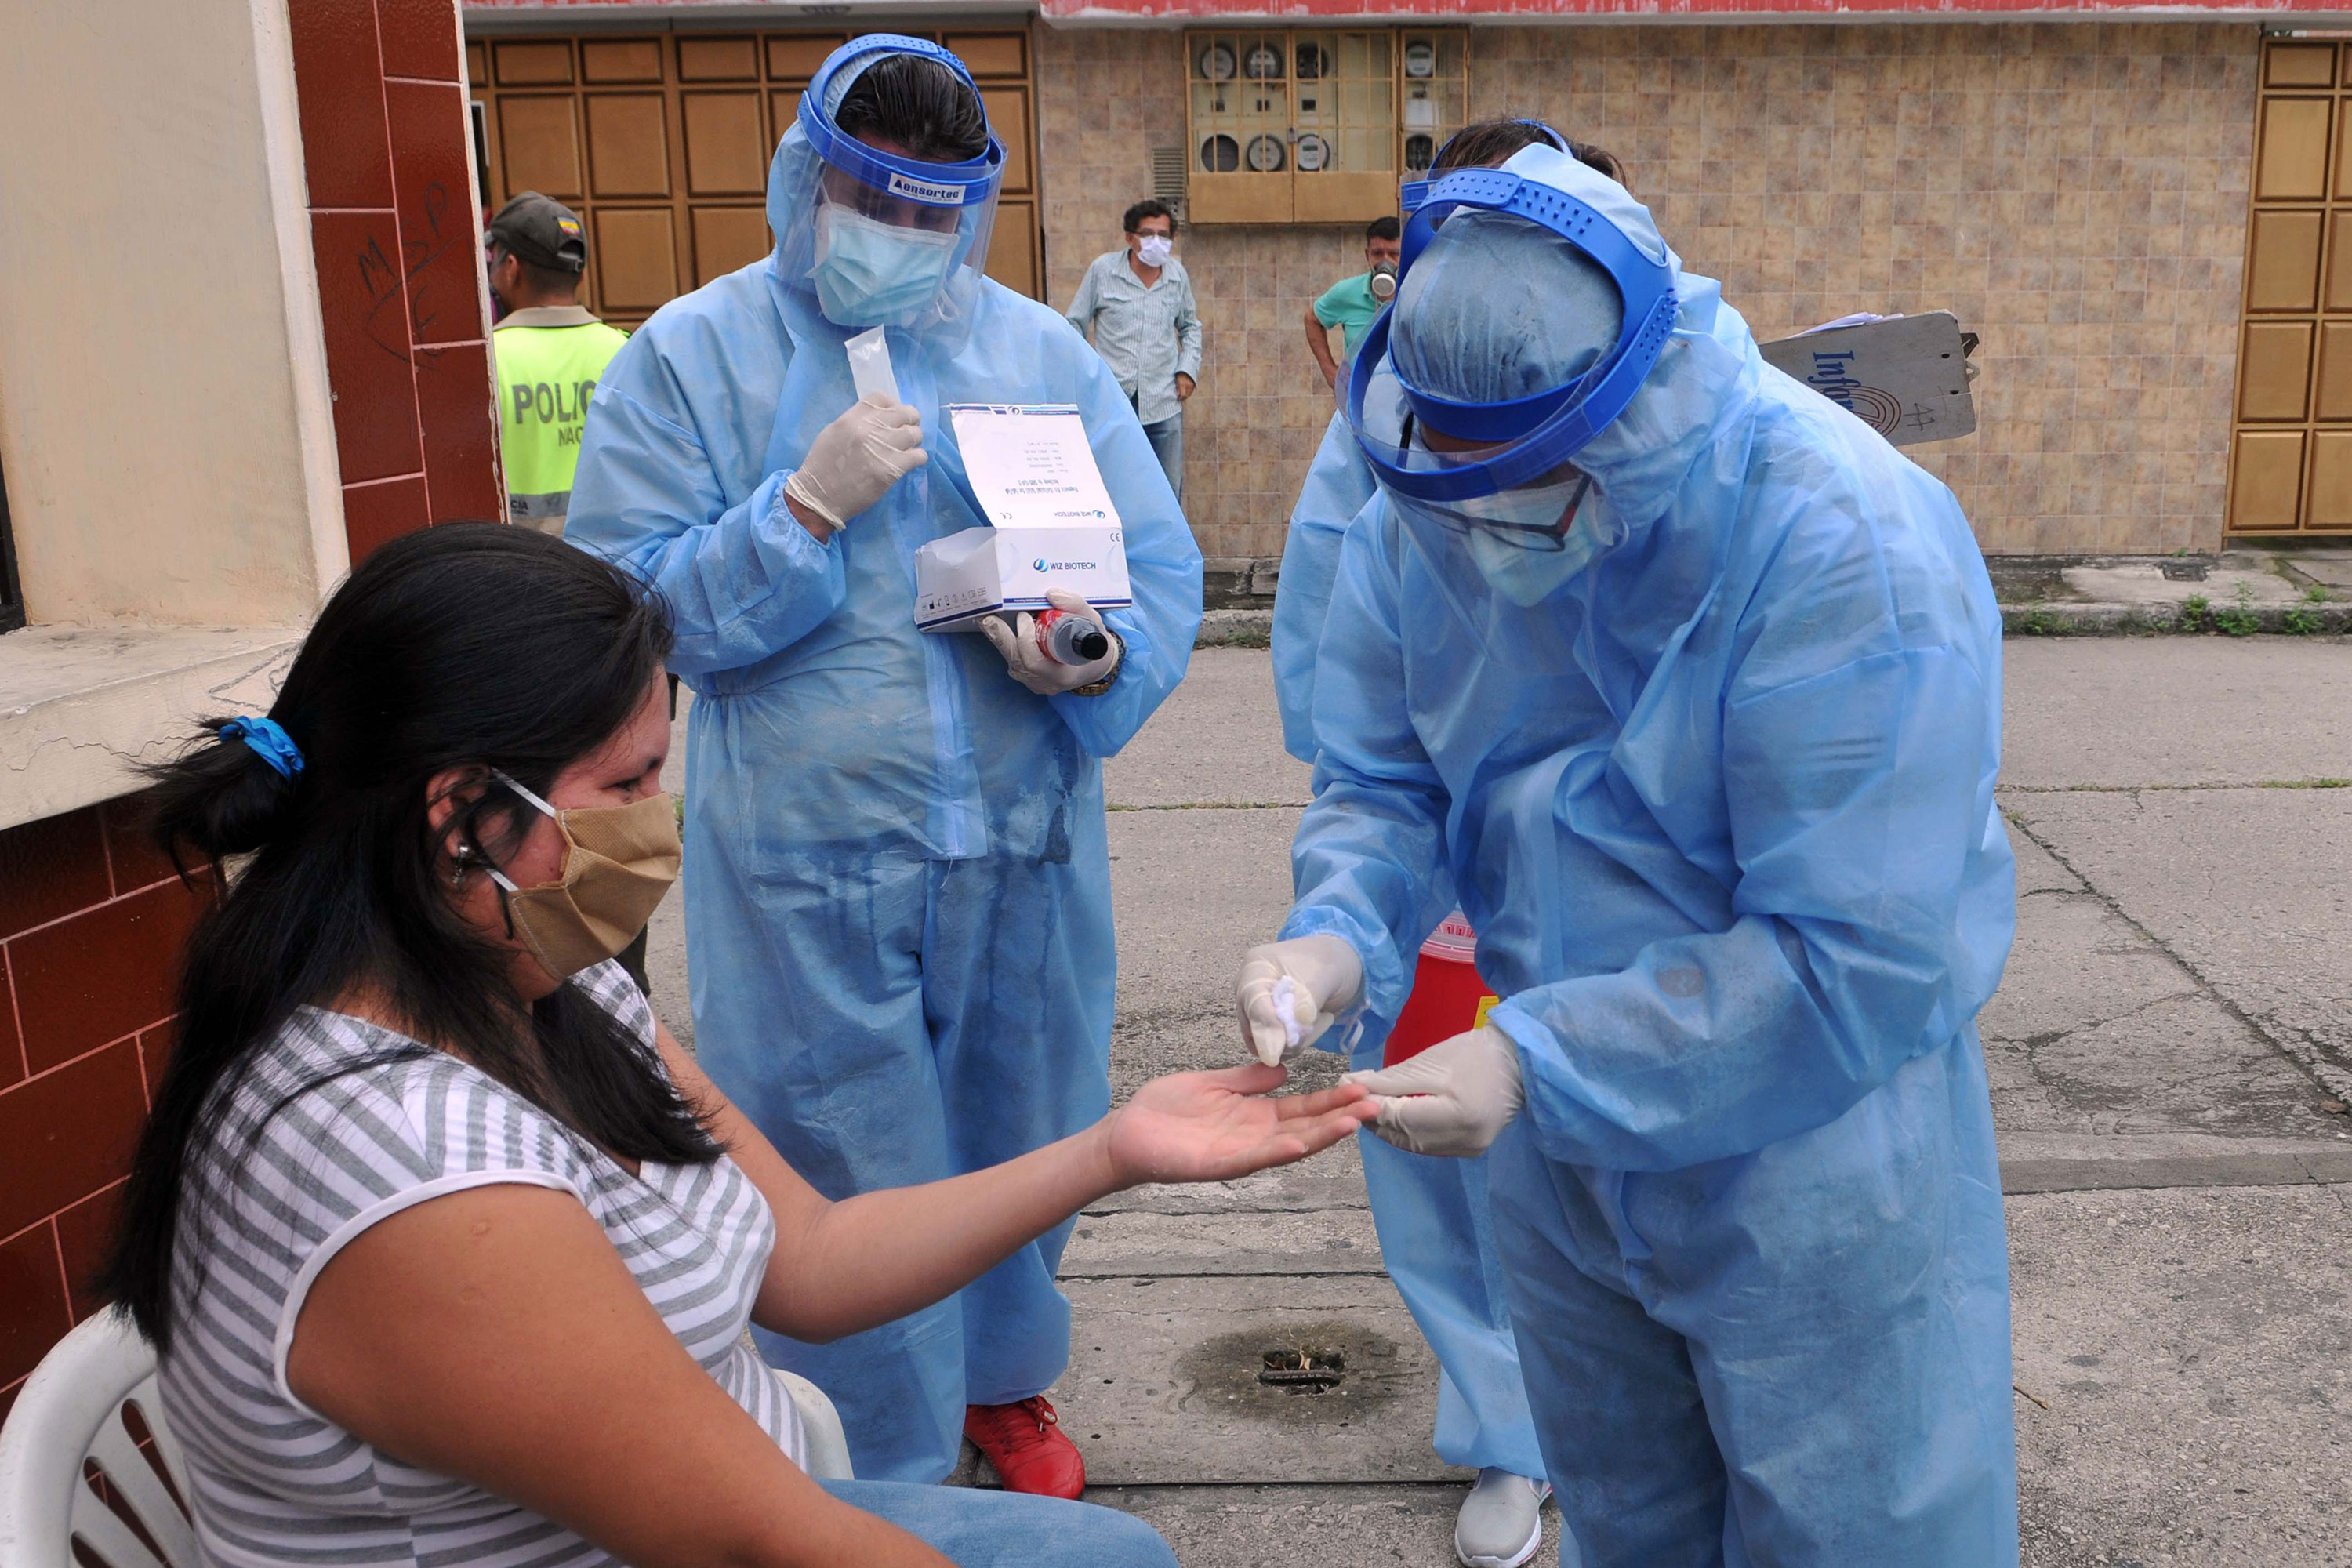 Health workers administer a coronavirus test to a woman in Guayaquil, Ecuador, on April 30.